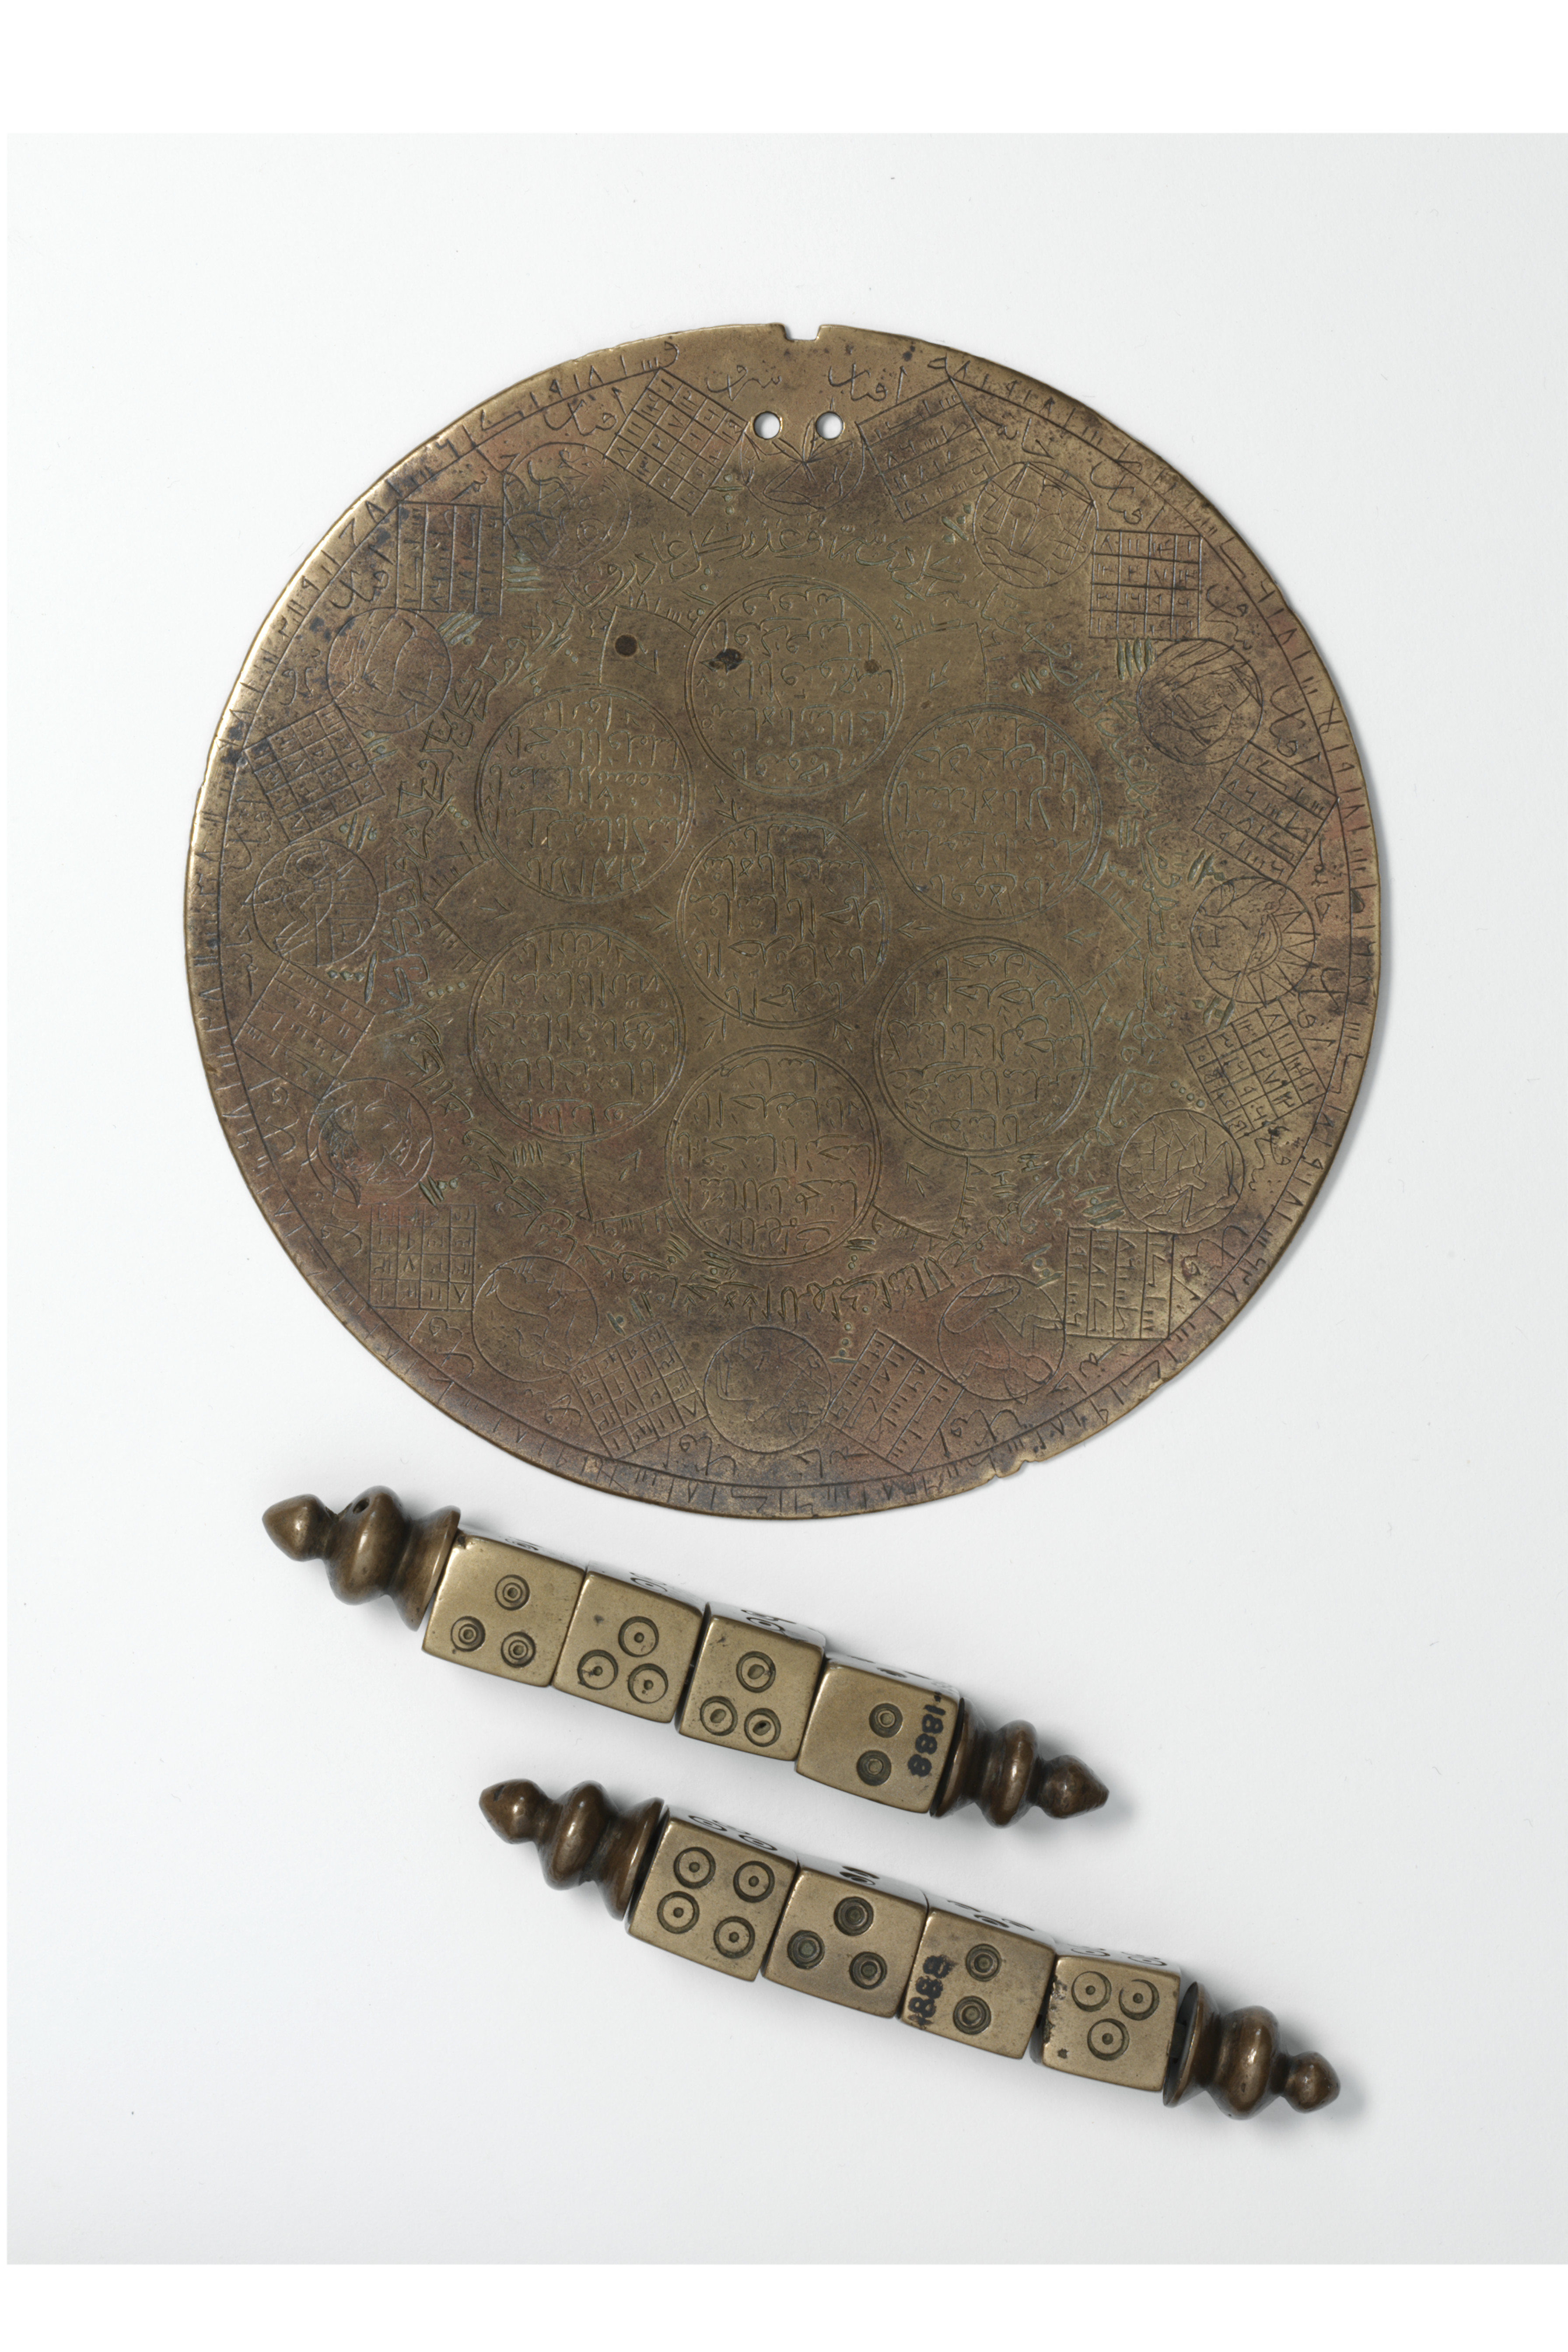 Dice and plaque, Iran, 1600-1700. Cast and engraved bronze. Museum number: 505-1888 © Victoria and Albert Museum. The art of using dice for fortune-telling was developed at least 4000 years ago, long before dice were first used to play games.